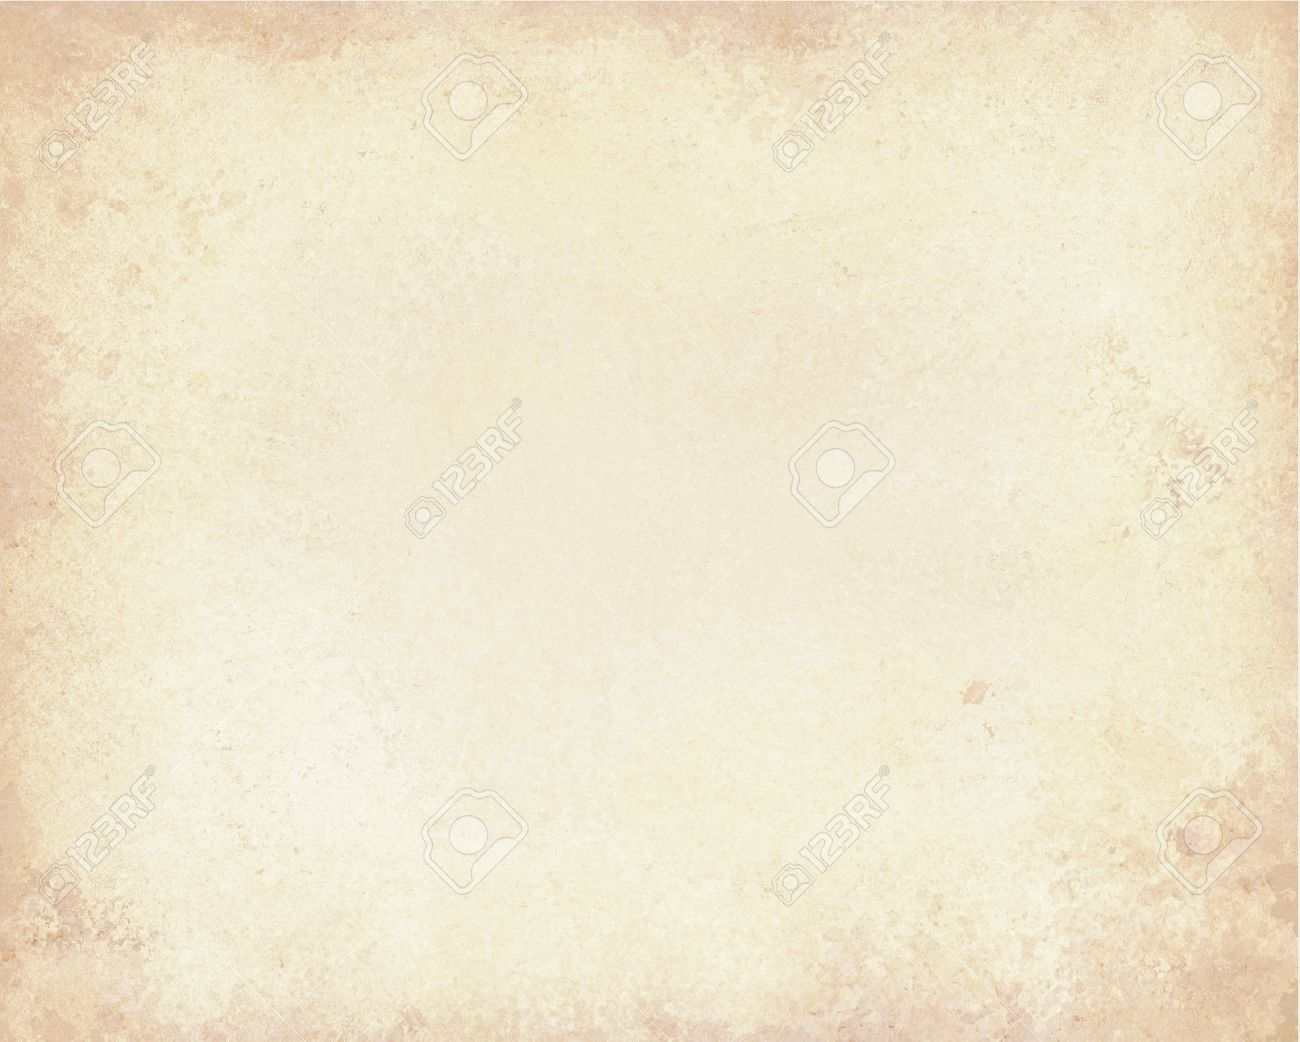 Old Brown Paper Background With Vintage Texture Layout Off White Or Cream Color Stock